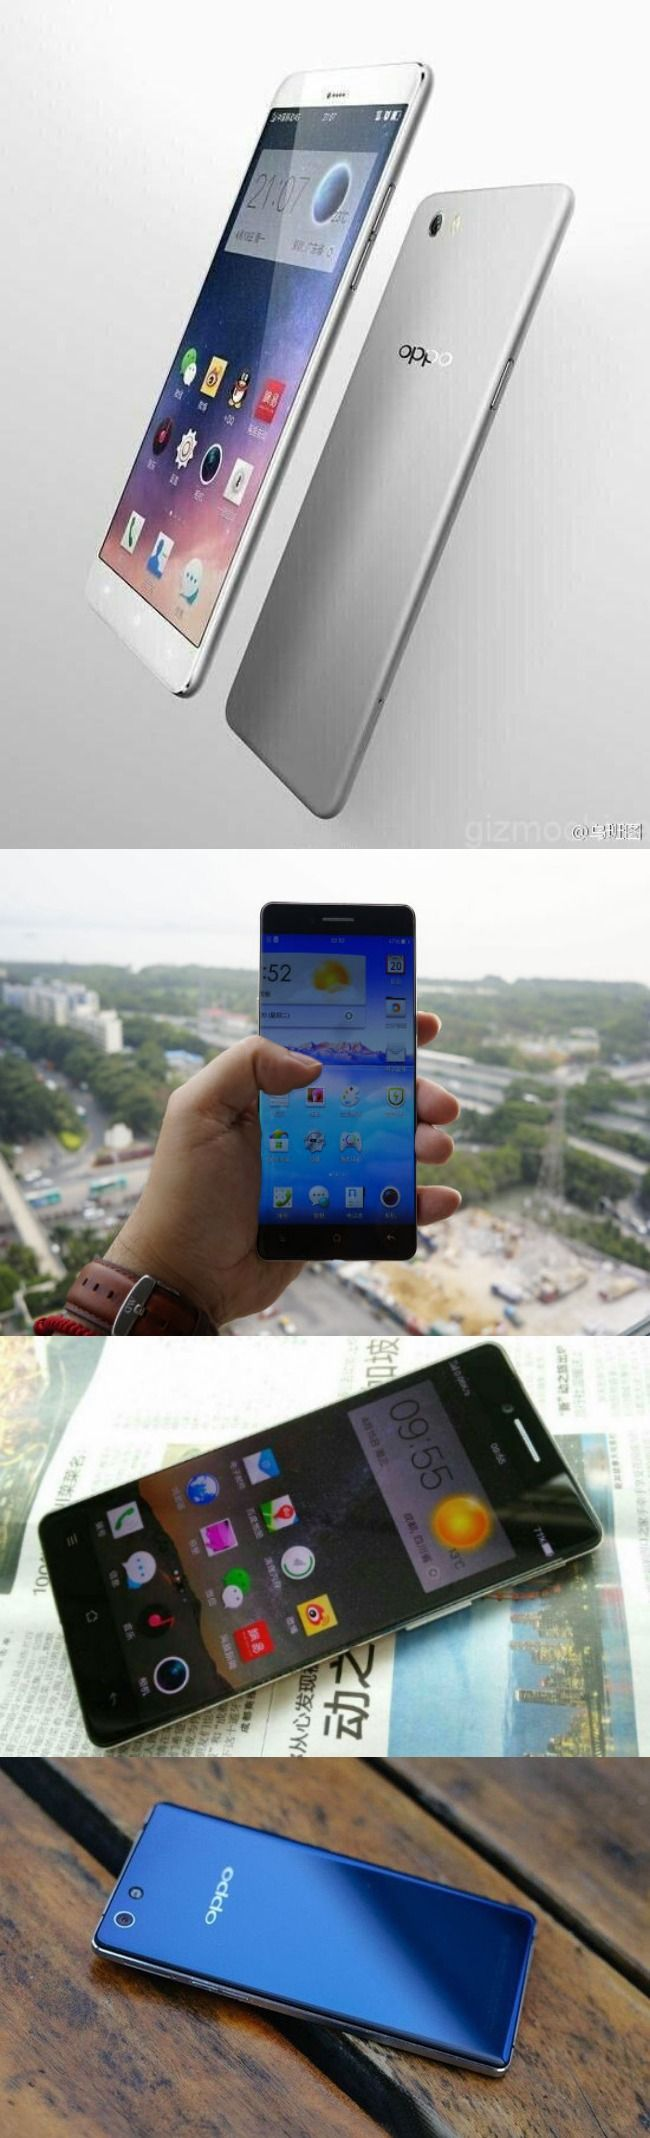 #Oppo R7 Leaked in New Image